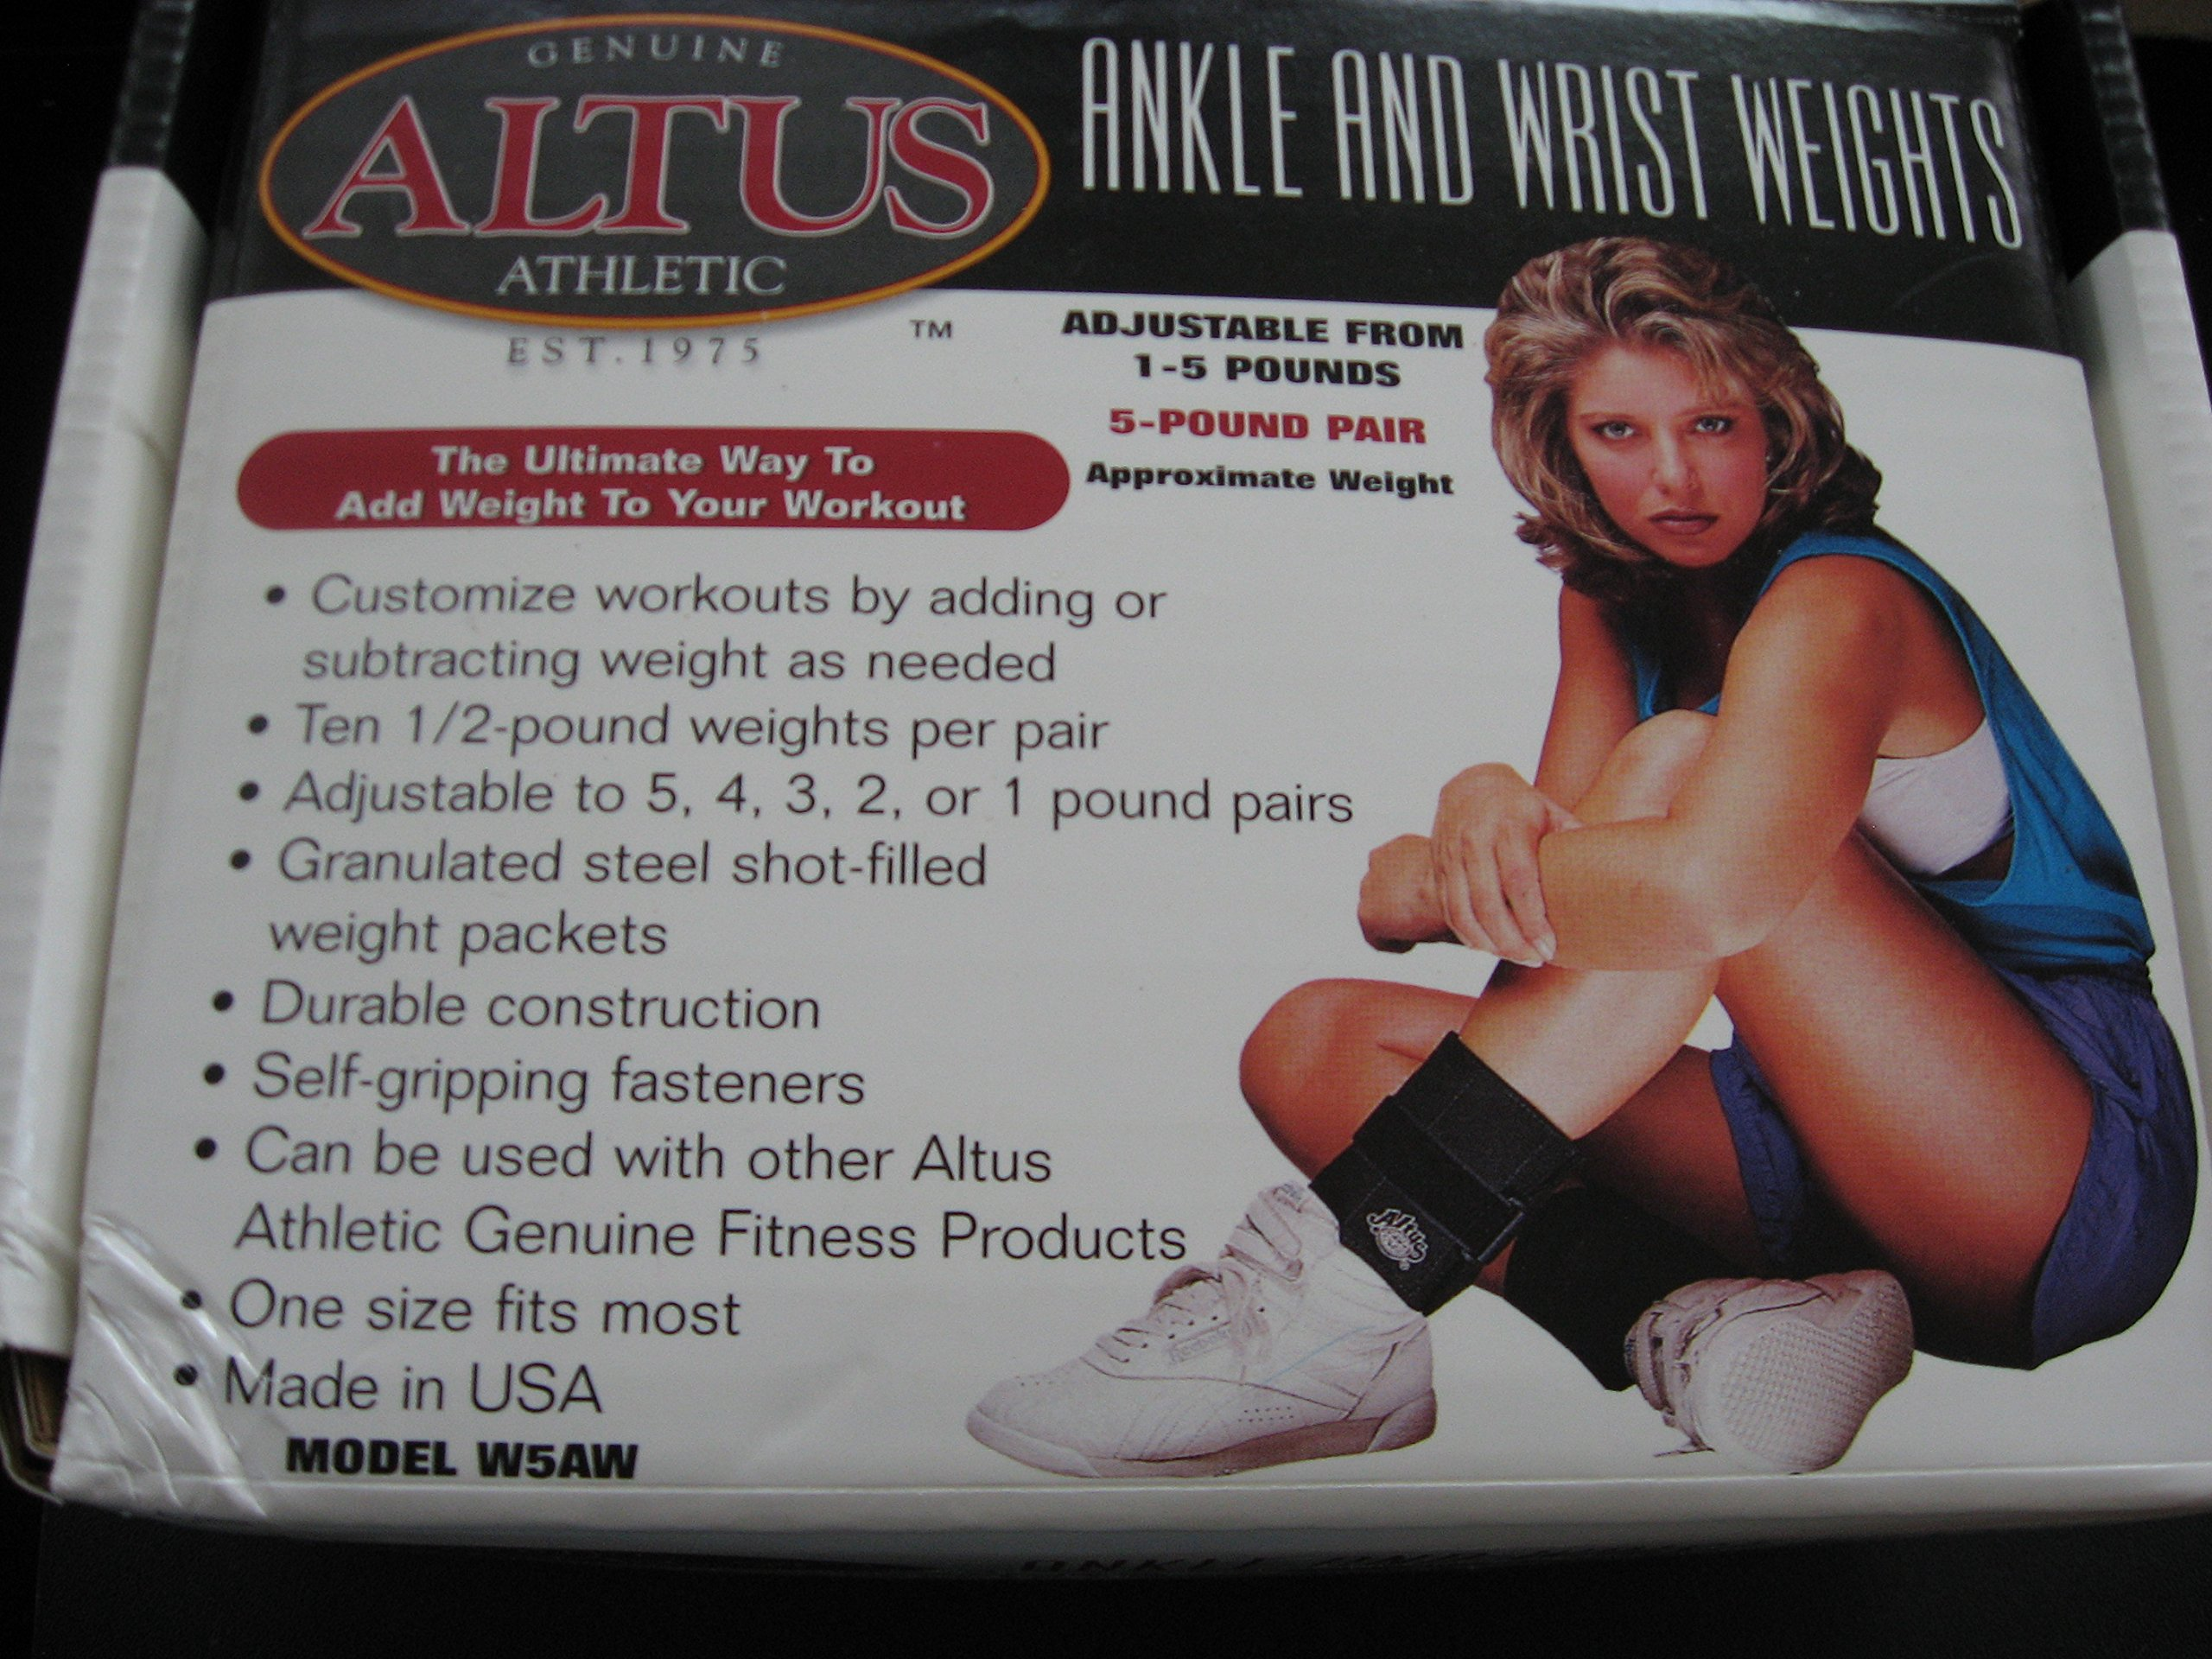 Ankle and Wrist Weights Adjustable 1-5 Pounds [Misc.]